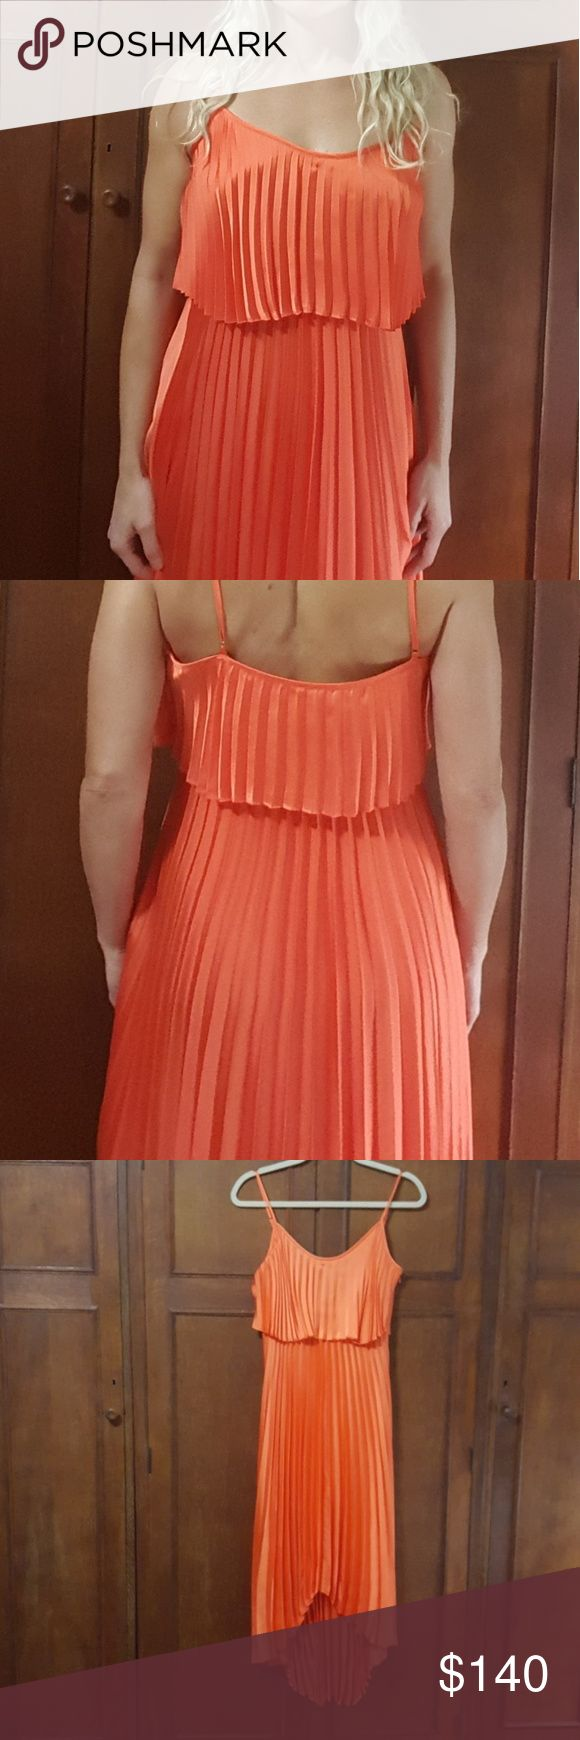 """Laundry Shelli Segal High/Low Orange Pleated Dress Absolutely beautiful. Like new condition. Fabric content in last pic.   Approx measurements when flat:  Shoulder to shoulder 11"""" Armpit to armpit 15"""" Waist area 15"""" Length of straps (as shown) 4.5"""" Length (front) 41.5, (back) 52""""  For reference, I'm 5'6 and 34-27-34 and this dress fits great. Laundry By Shelli Segal Dresses"""